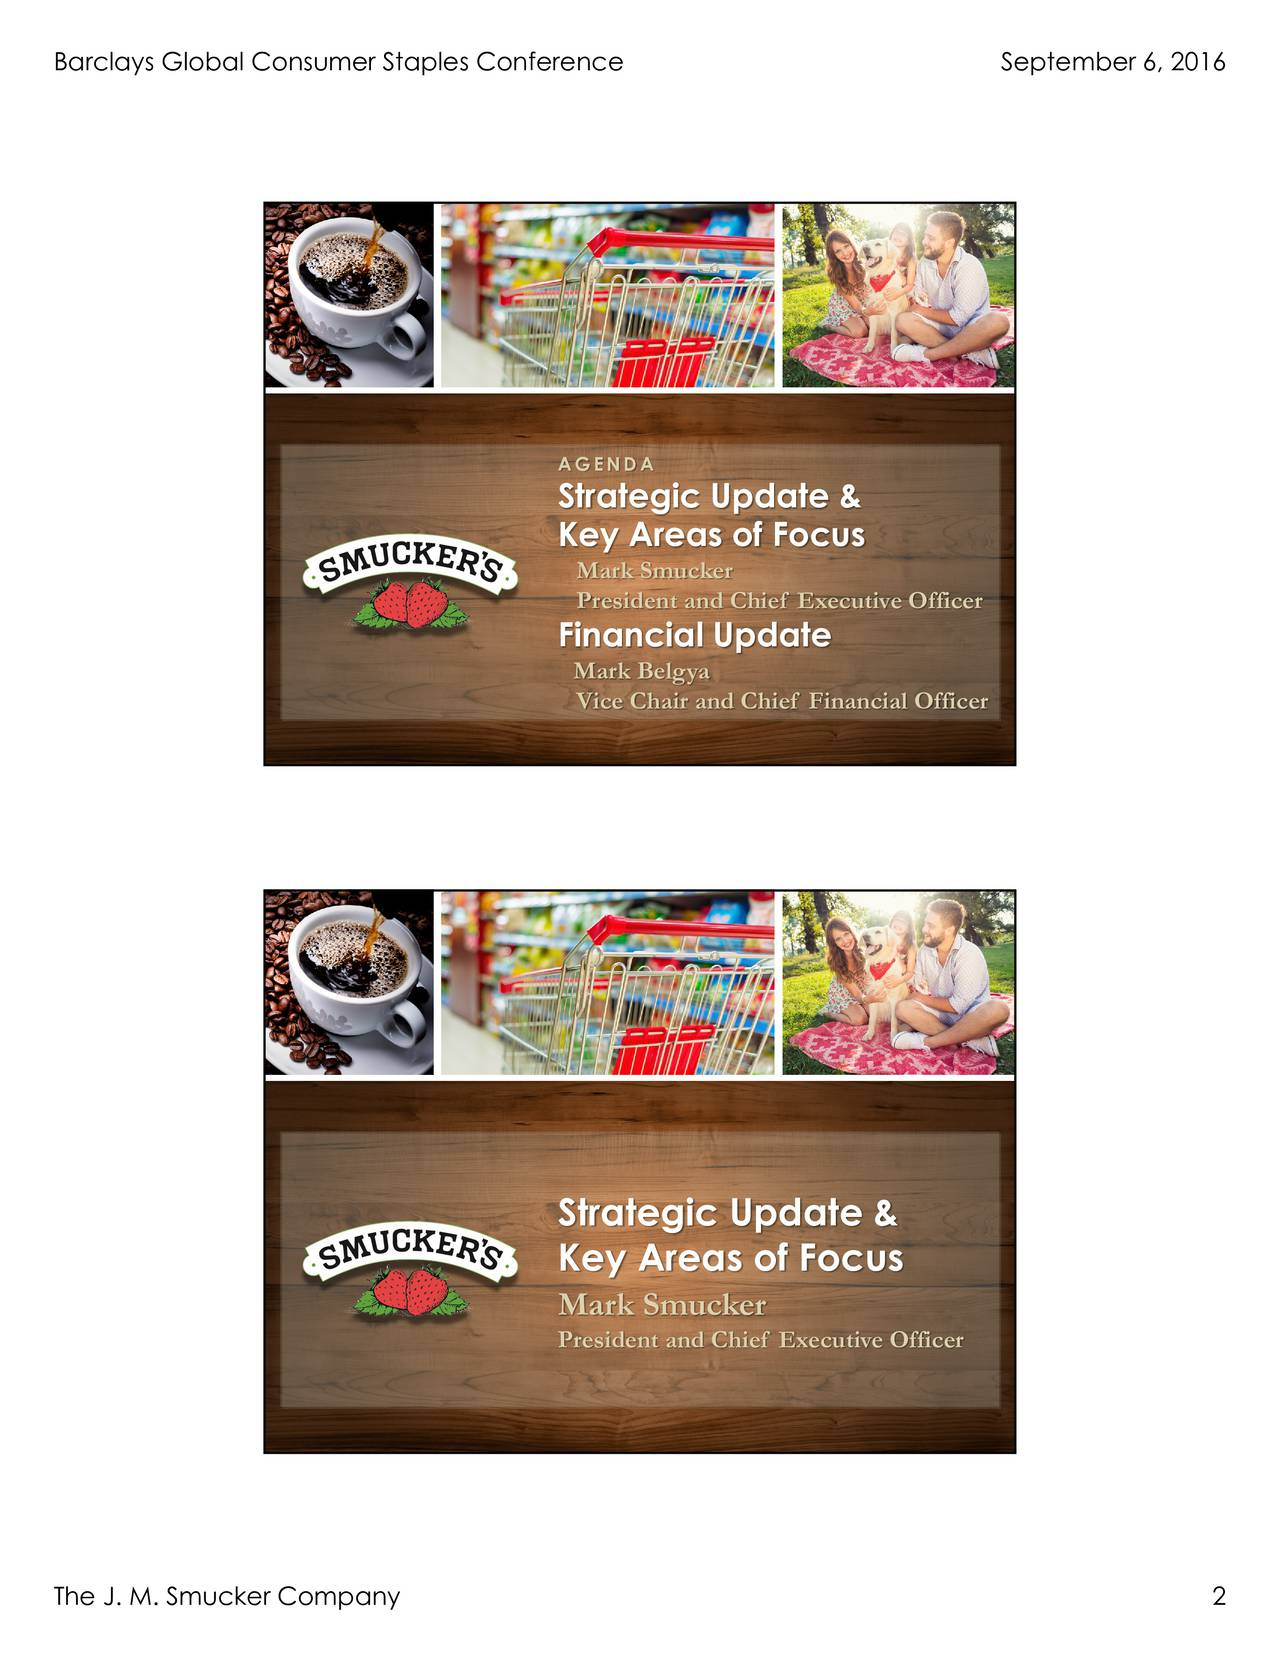 AGENDA Strategic Update & Key Areas of Focus Mark Smucker President and Chief Executive Officer Financial Update Mark Belgya Vice Chair and Chief Financial Officer Strategic Update & Key Areas of Focus Mark Smucker President and Chief Executive Officer The J. M. Smucker Company 2